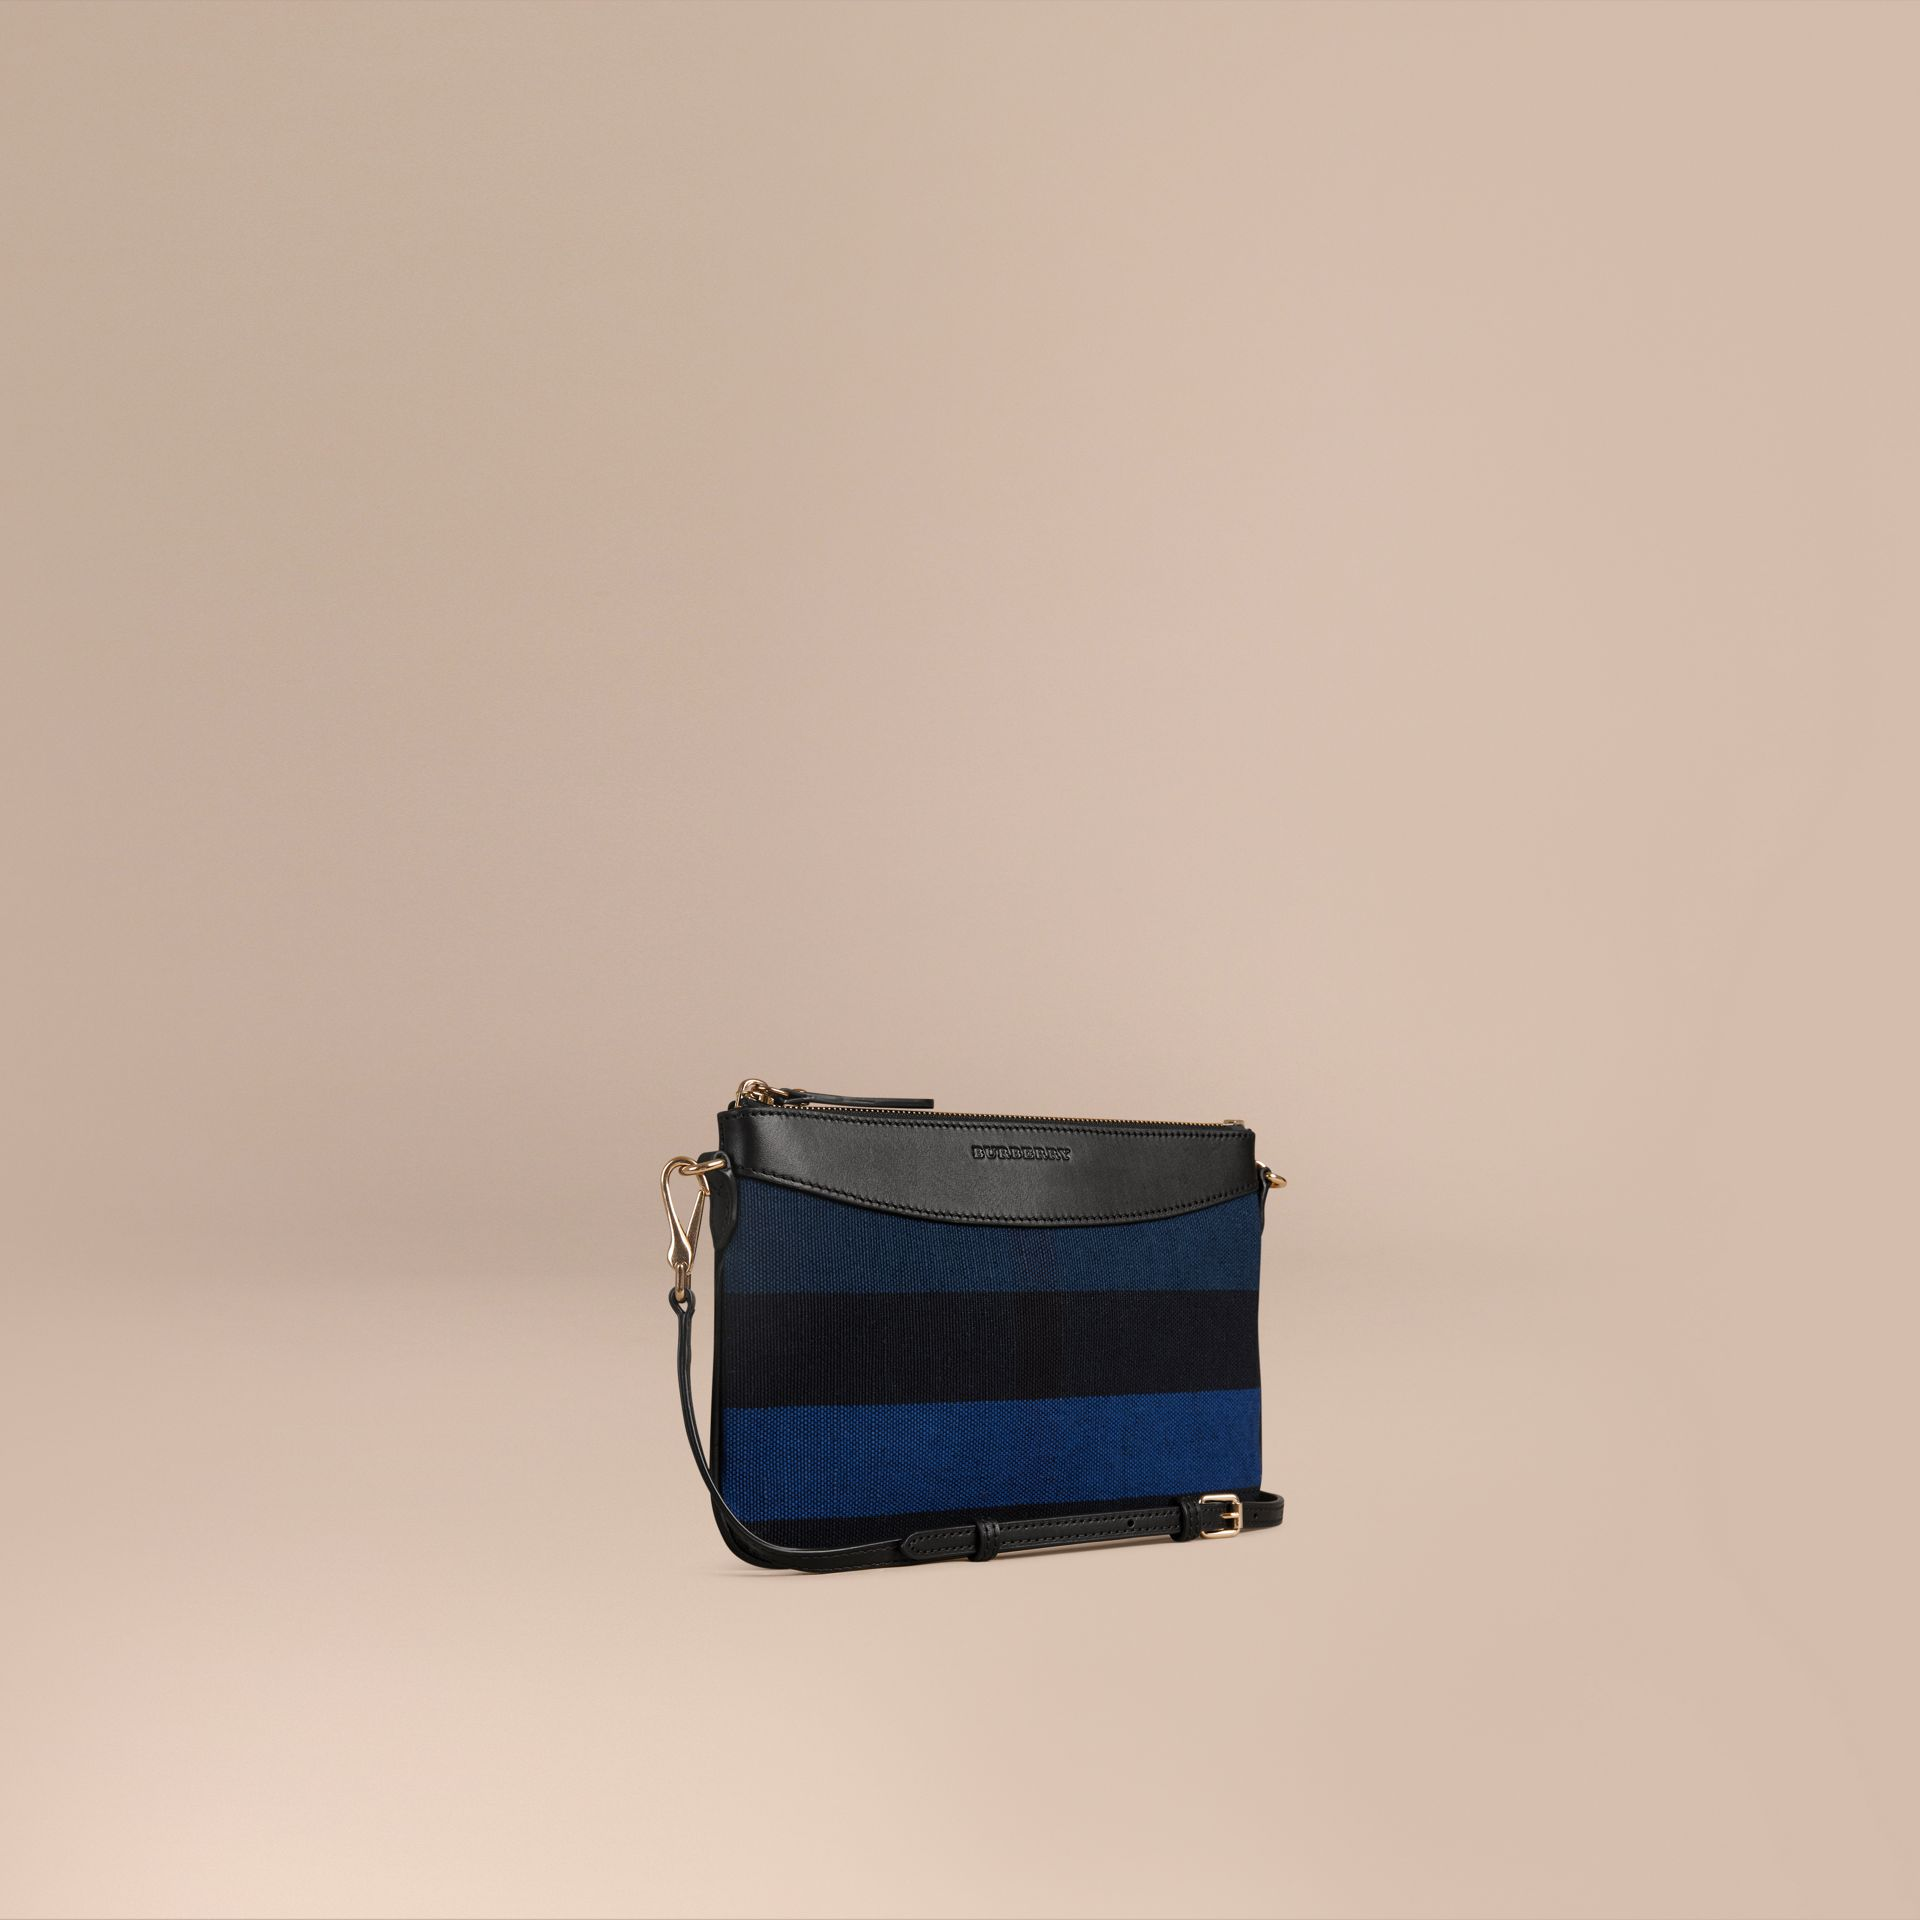 Ultramarine blue Canvas Check Clutch Bag Ultramarine Blue - gallery image 1